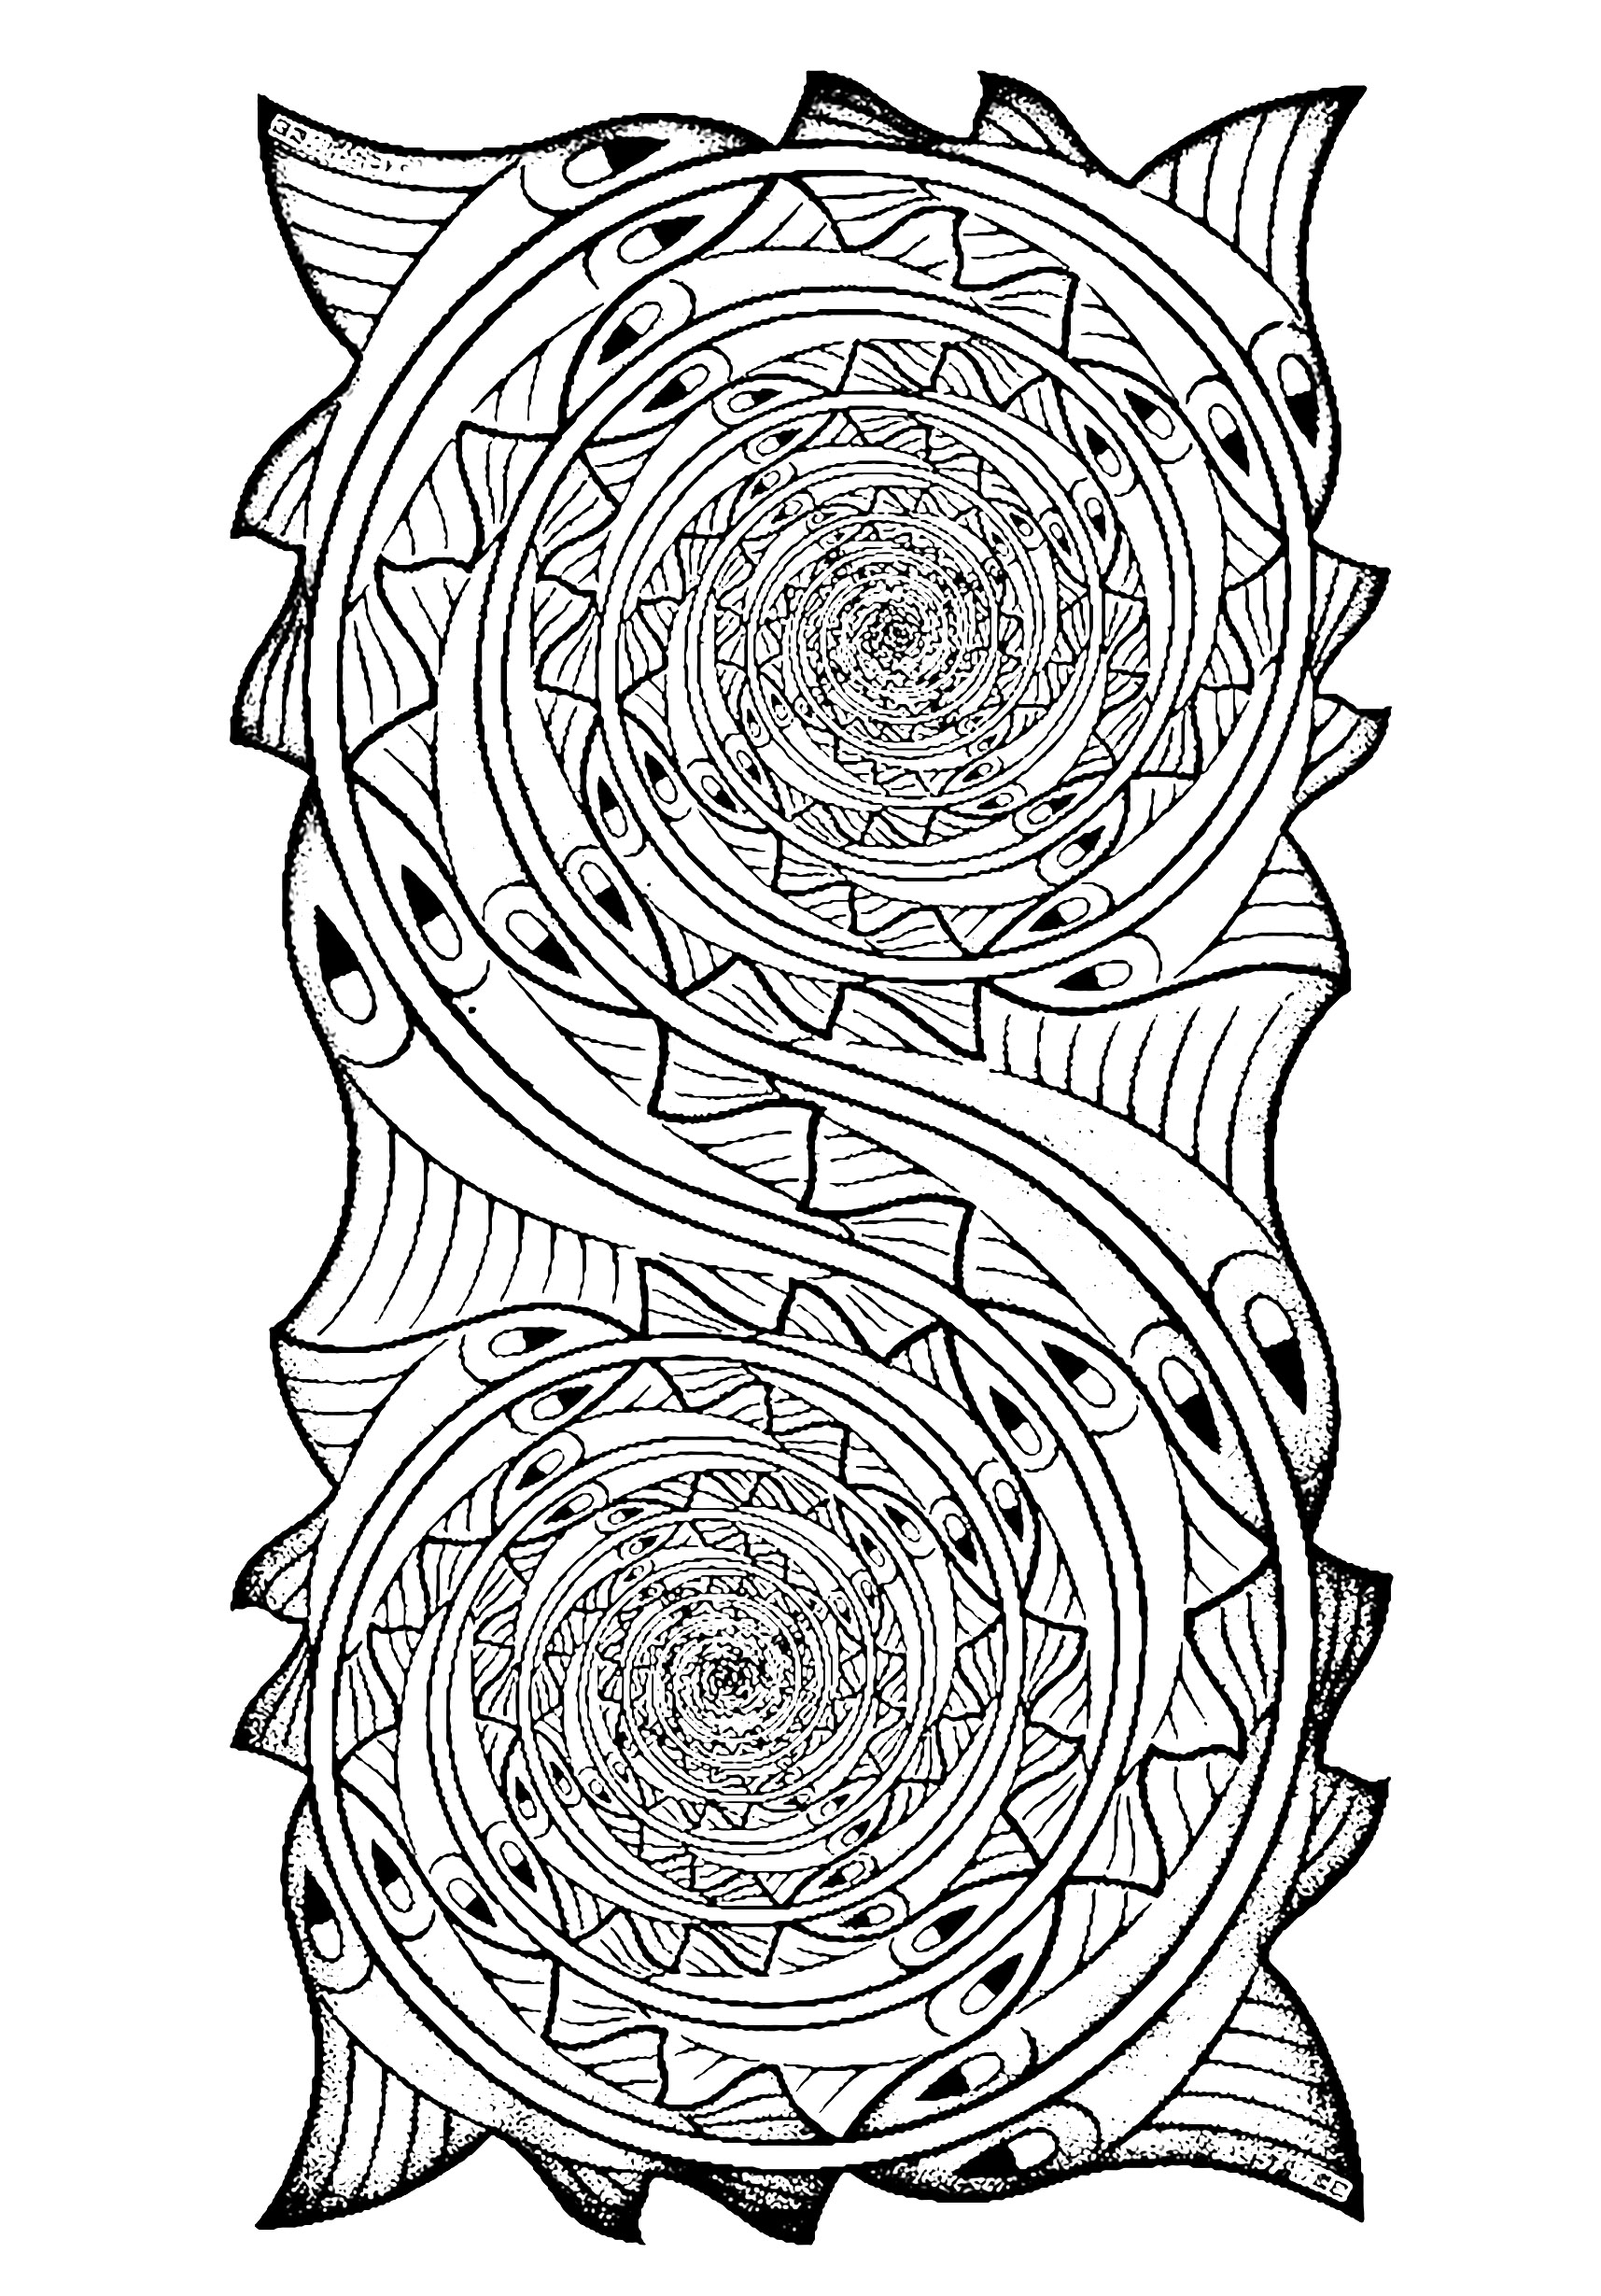 Fishes in a Whirlpool, a coloring page inspired by a M C Escher work of art